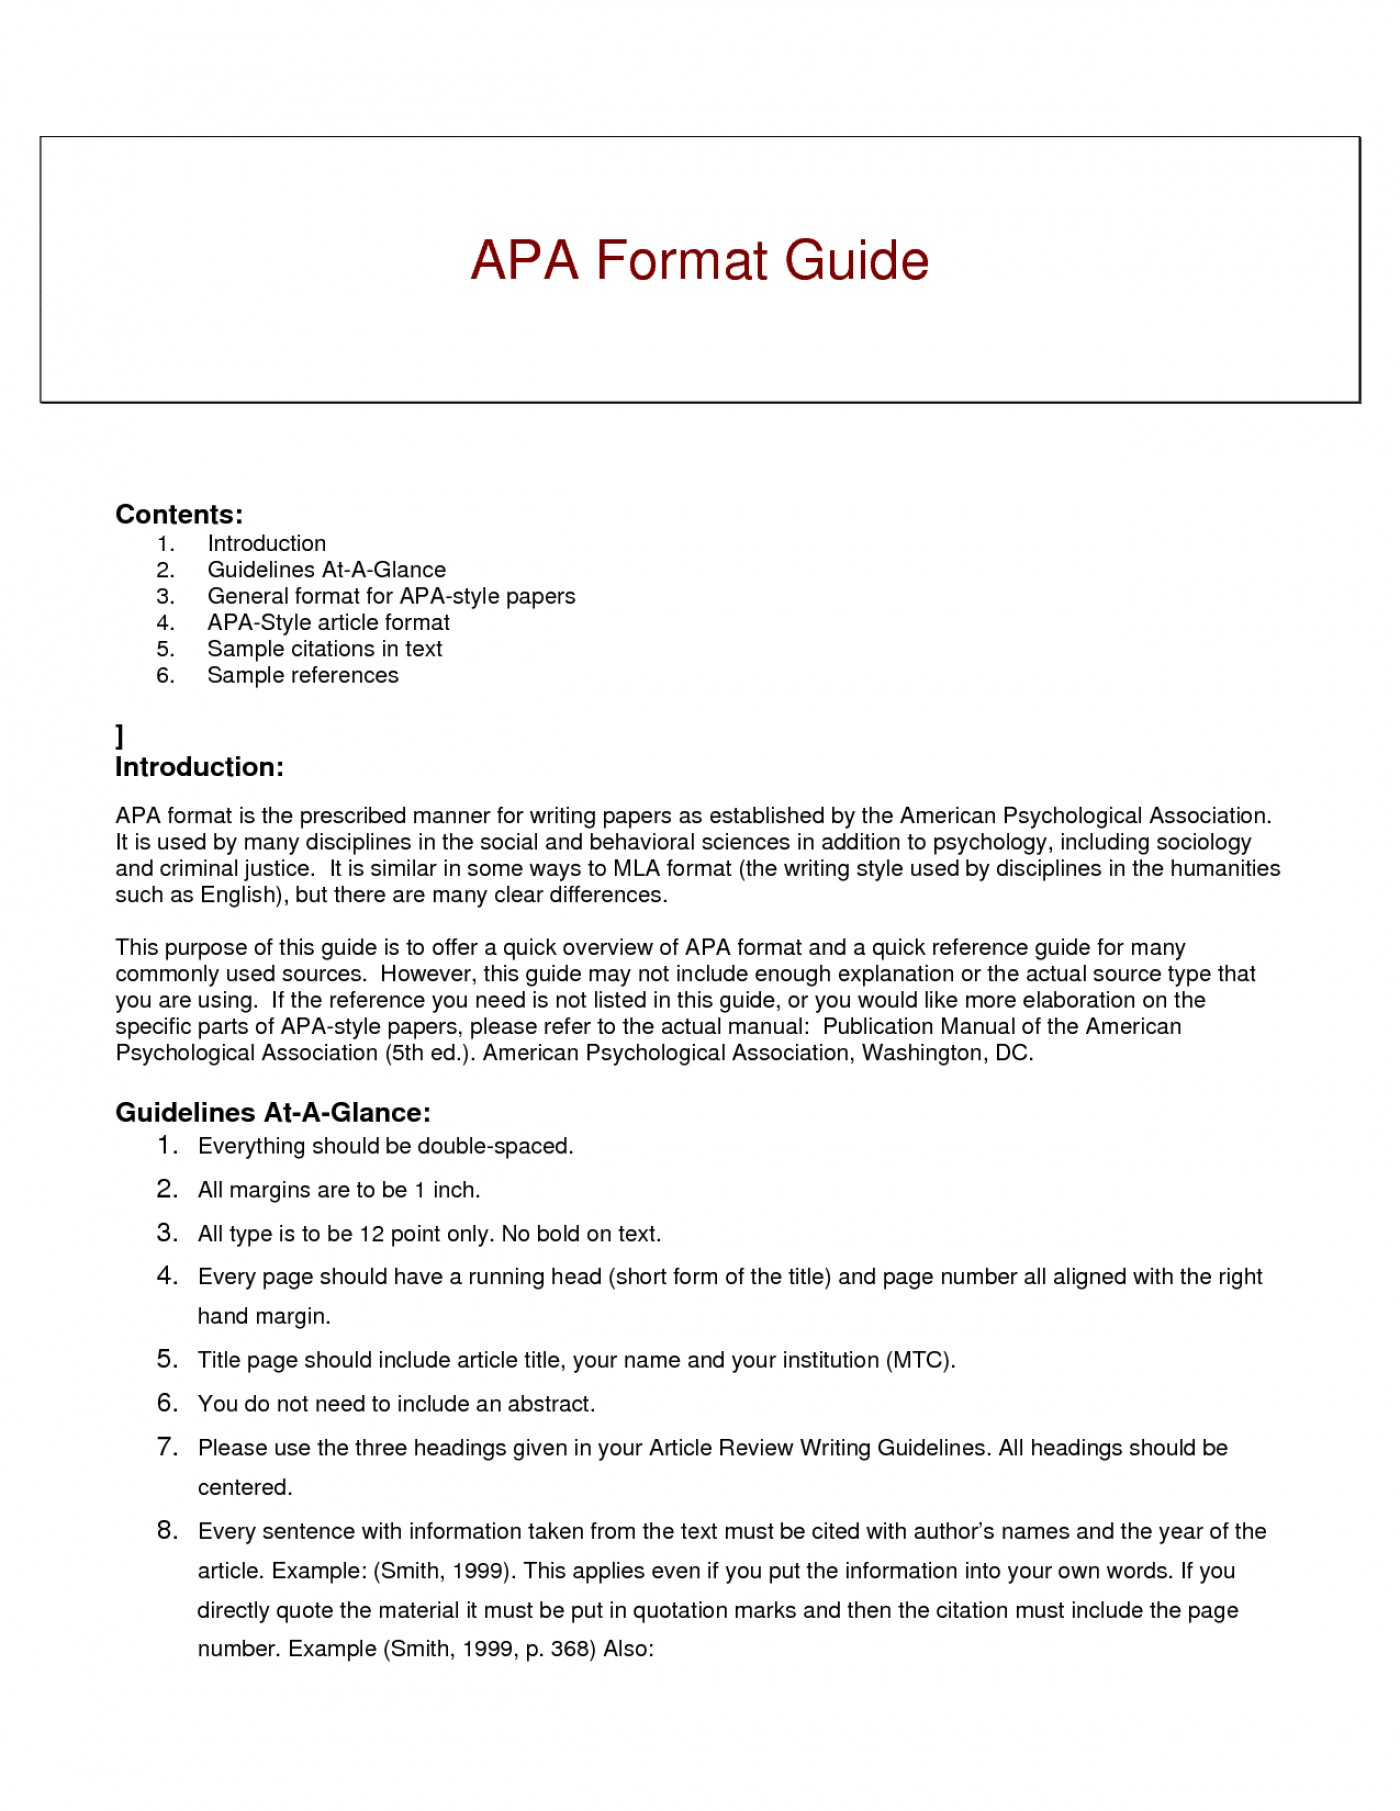 012 Research Paper Short Apa Format Resume Example Of Guide For Writing Style Excellent A Papers 1400